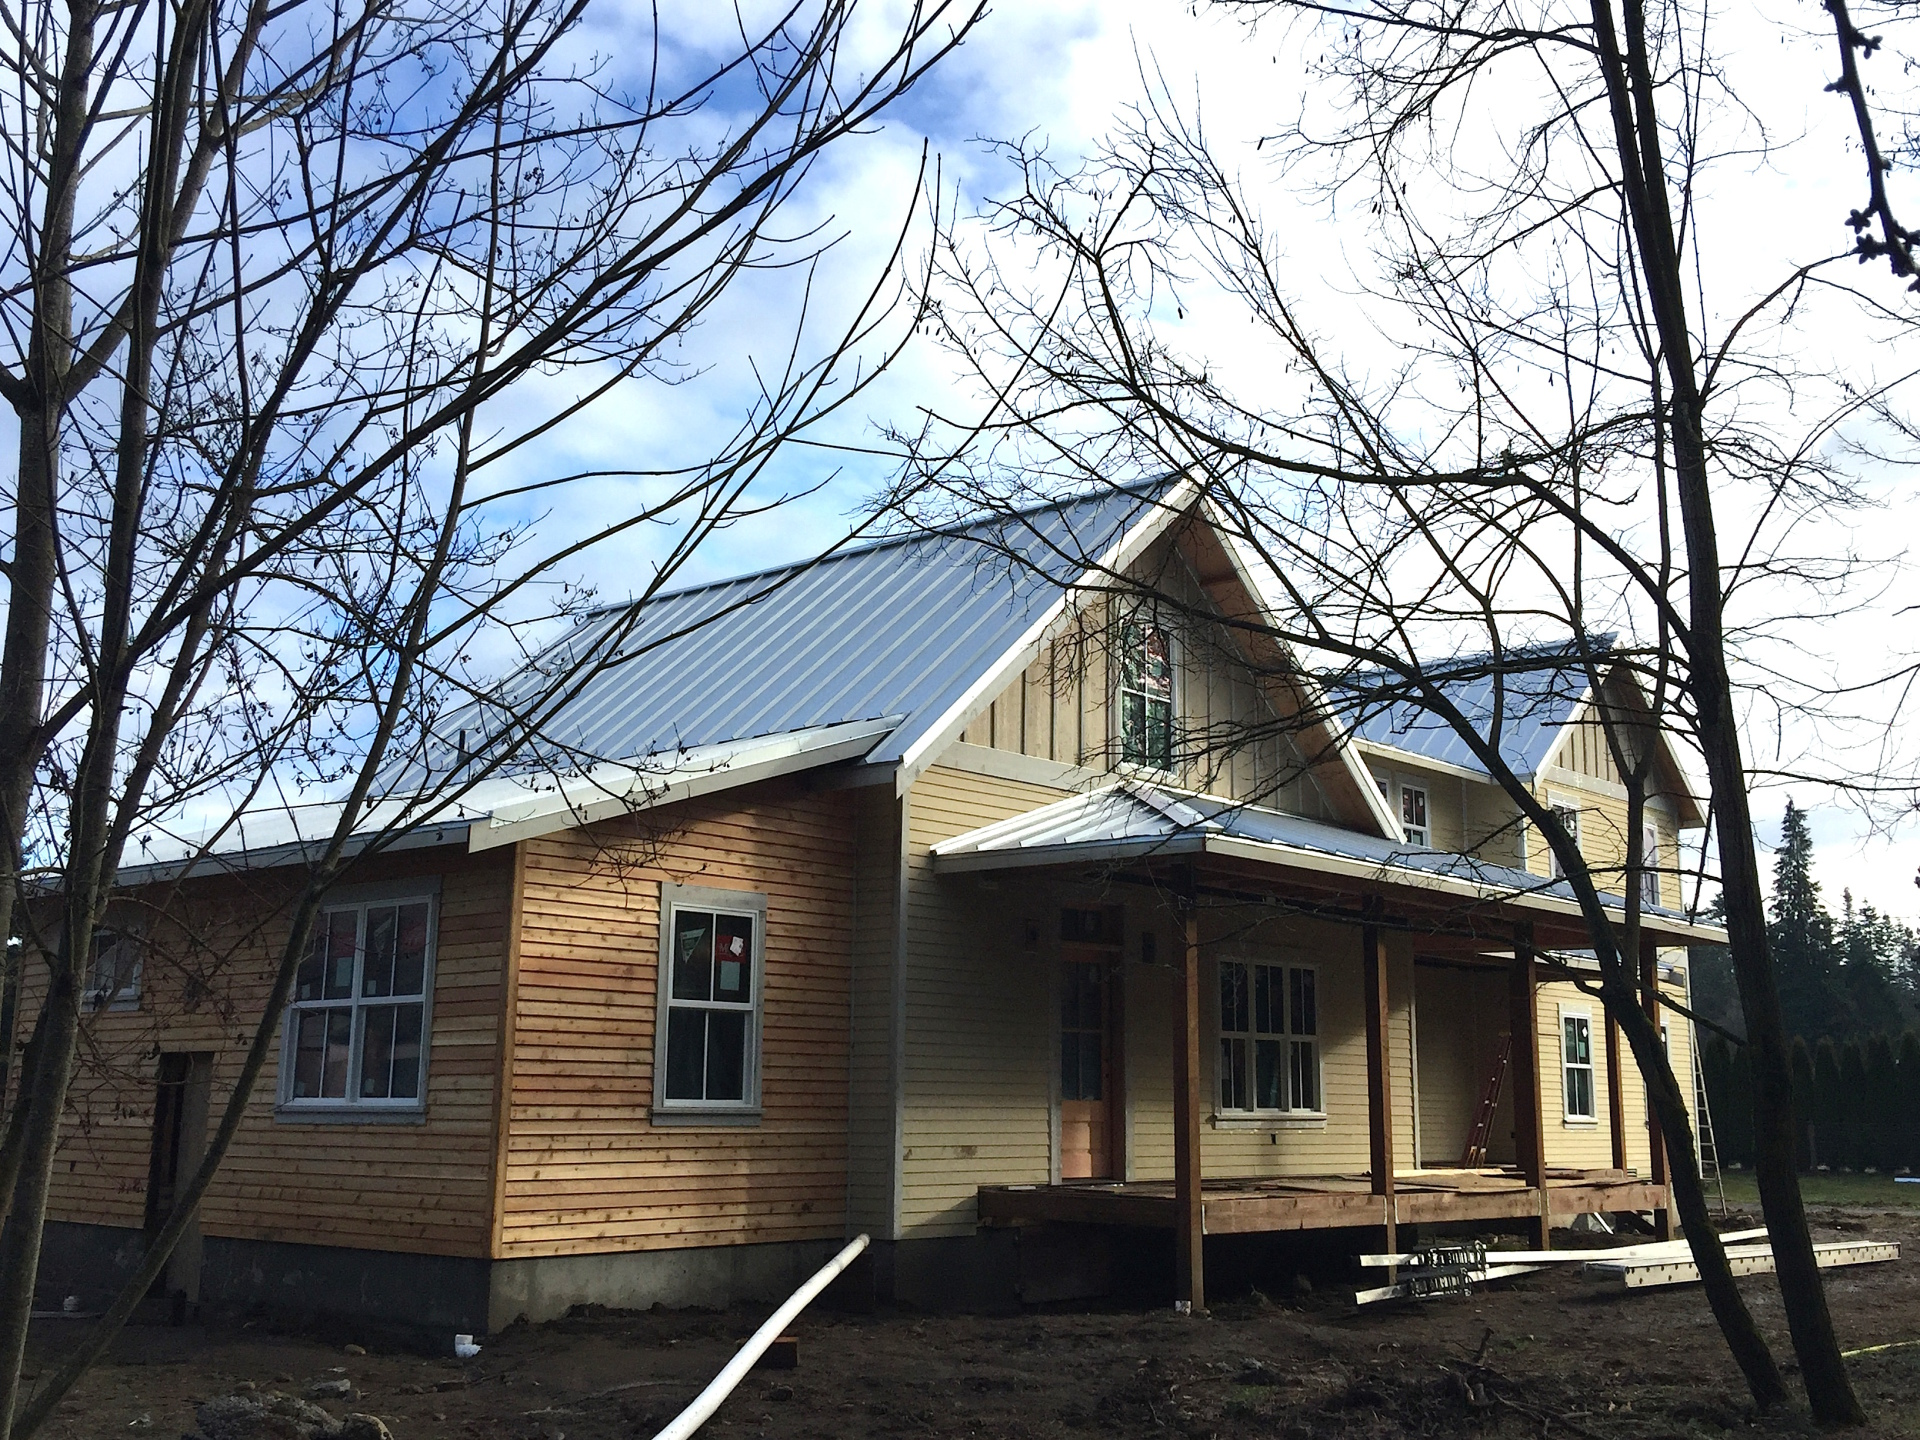 Metal Roofing Contractor Serving Edgewood, WA